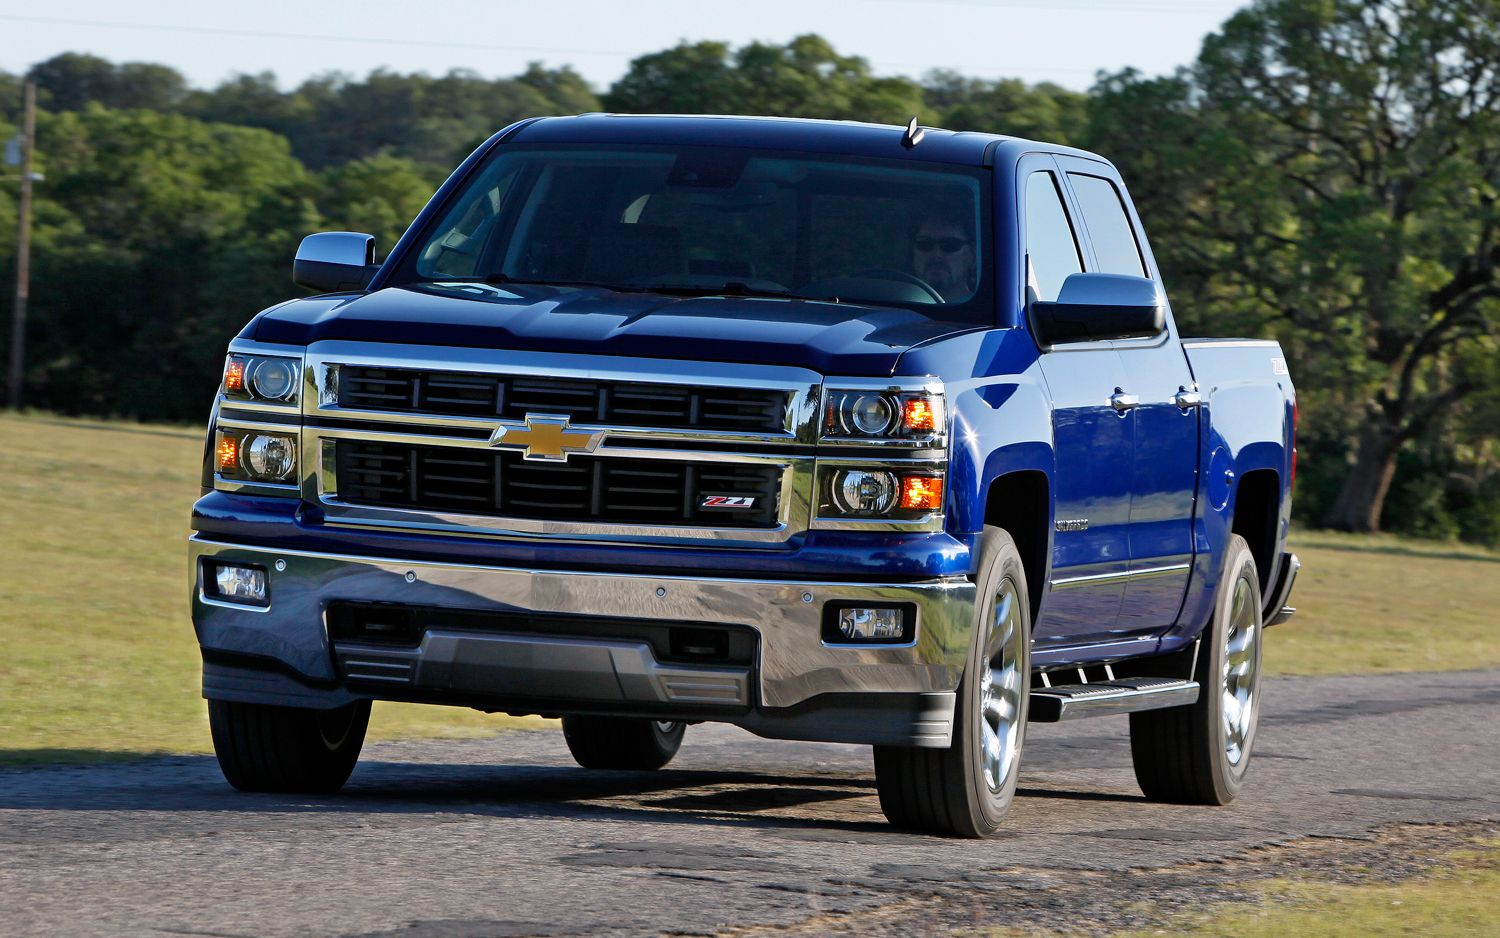 Royal Blue Chevrolet Silverado Truck Please Someone Get Me This